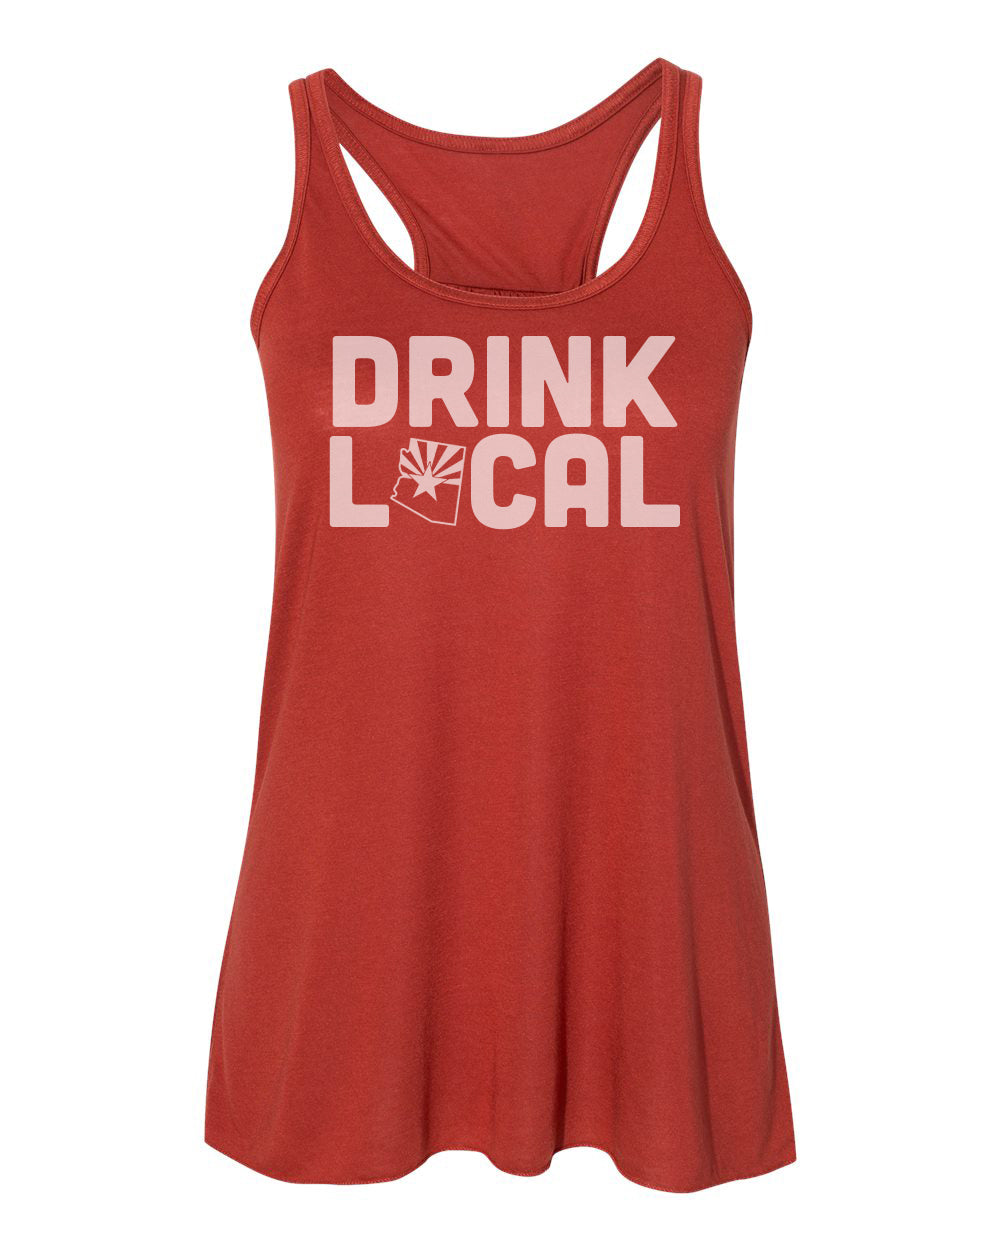 Drink Local Tank (AZ PRIDE)